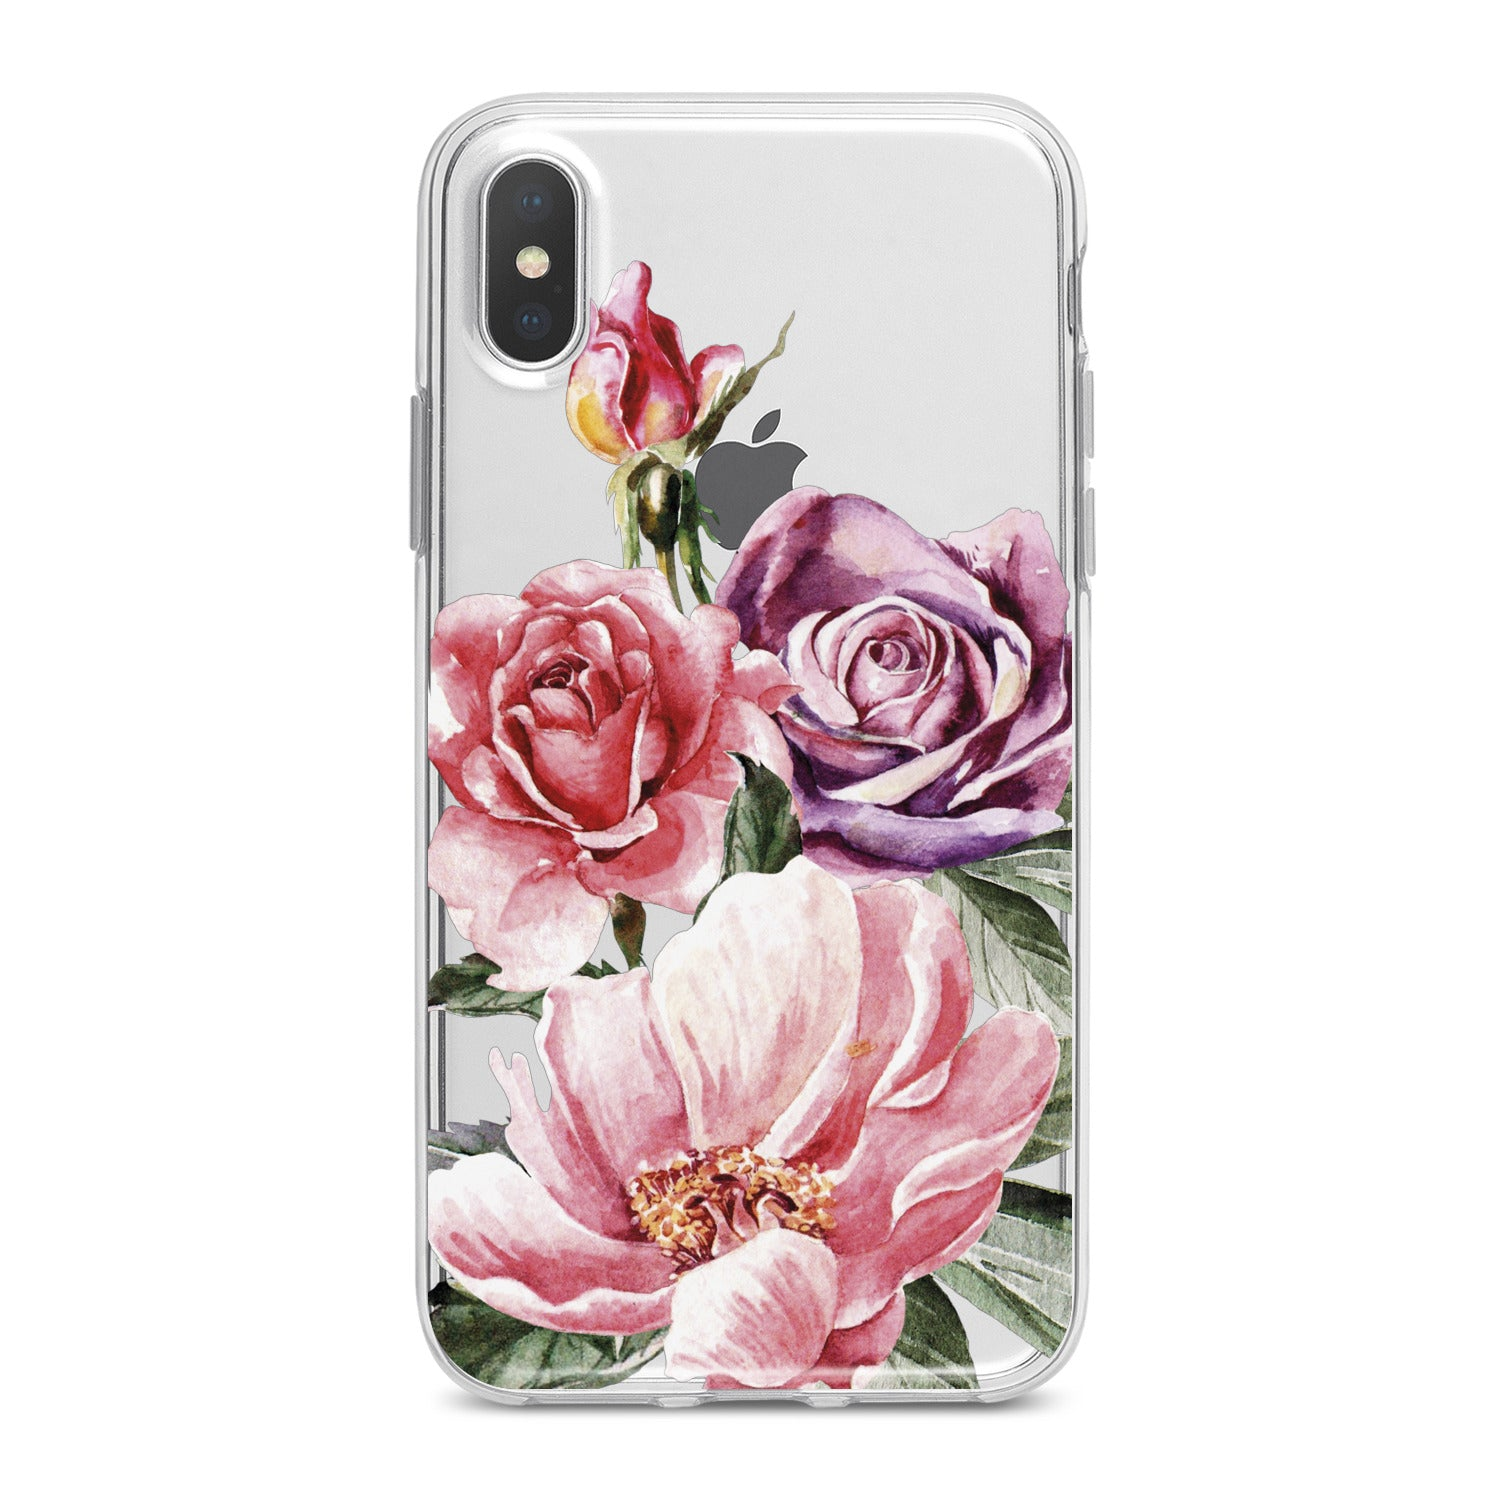 Lex Altern Colorful Floral Bouquet Phone Case for your iPhone & Android phone.